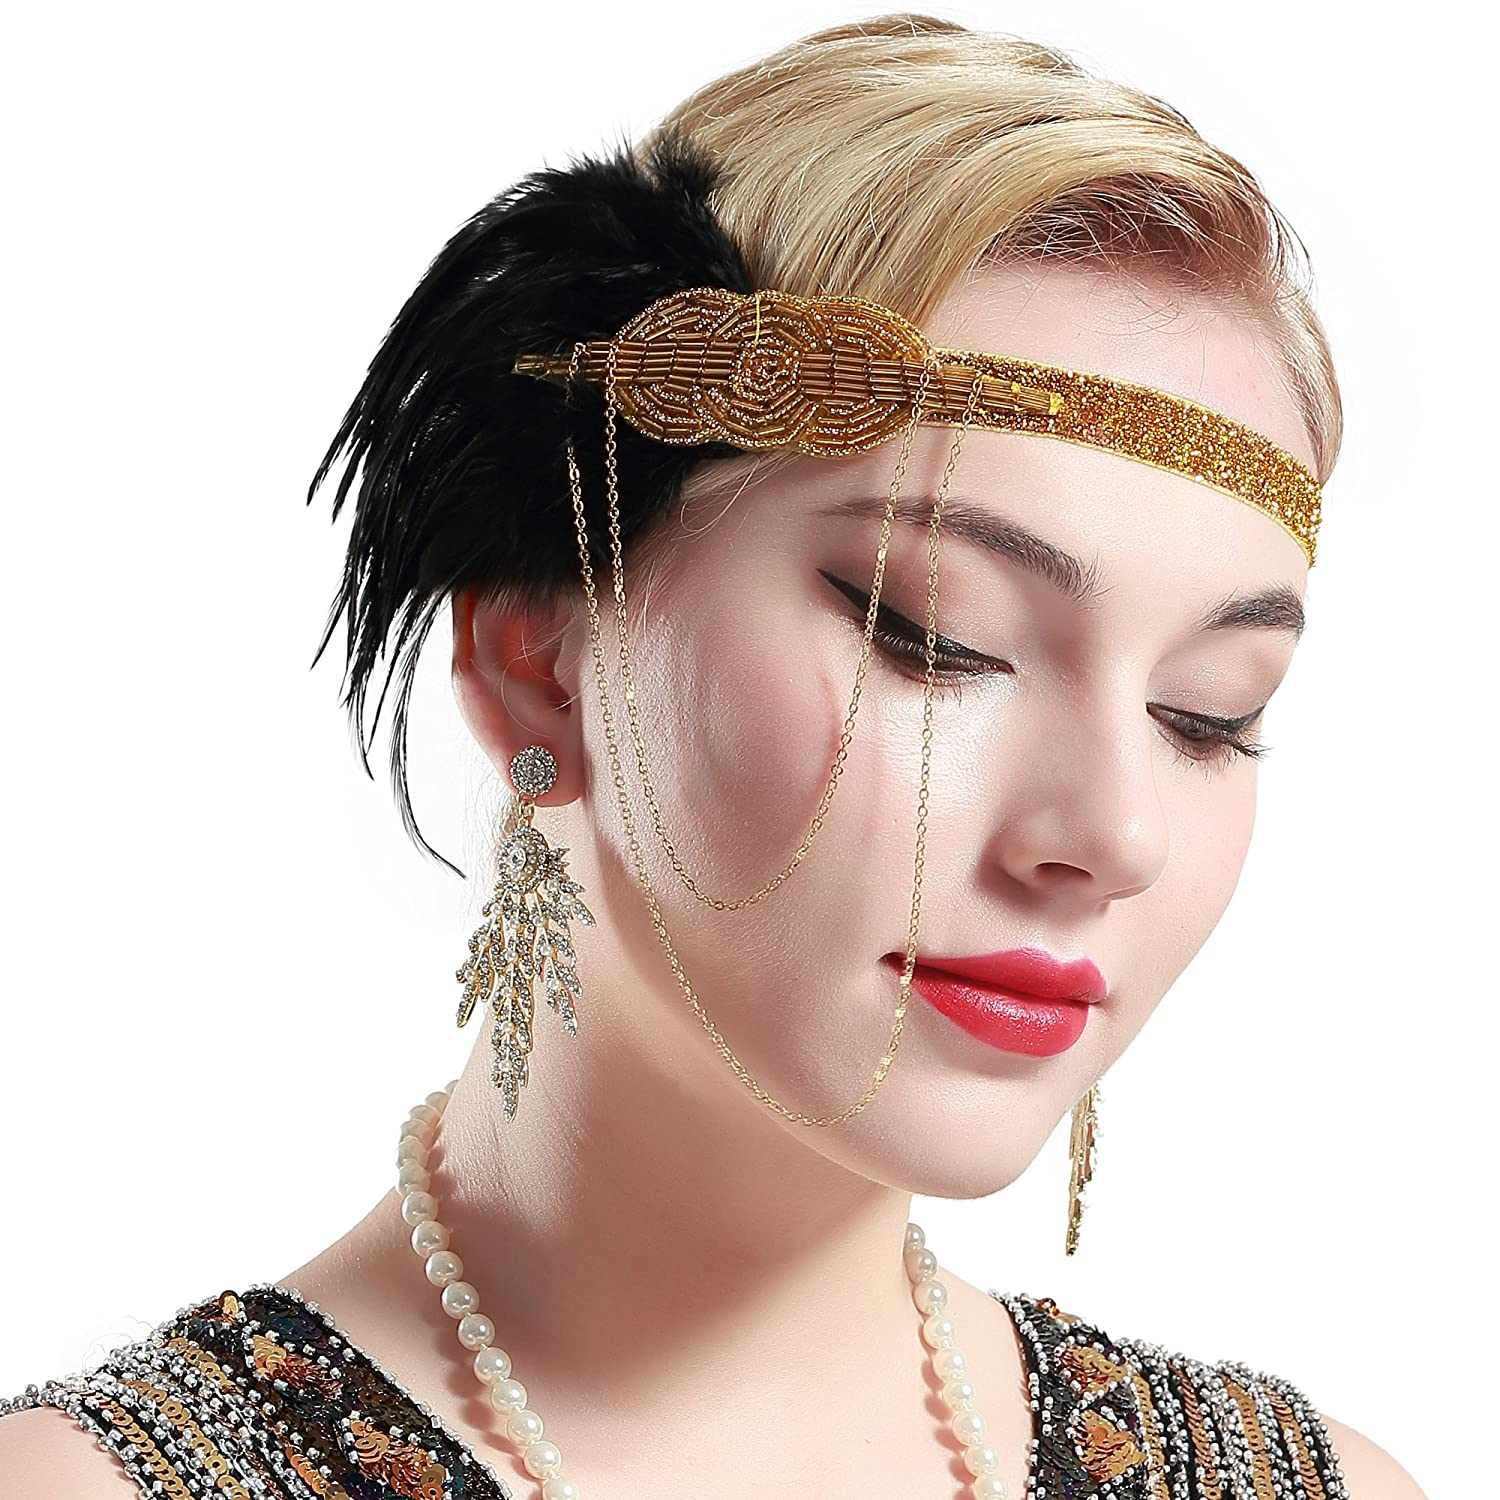 BABEYOND 1920s Flapper Accessories Headband Black Feather Headband 20s Flapper Gatsby Headpiece Vintage Beaded Headband Gatsby Accessories WHUS-headband-39-Black-1